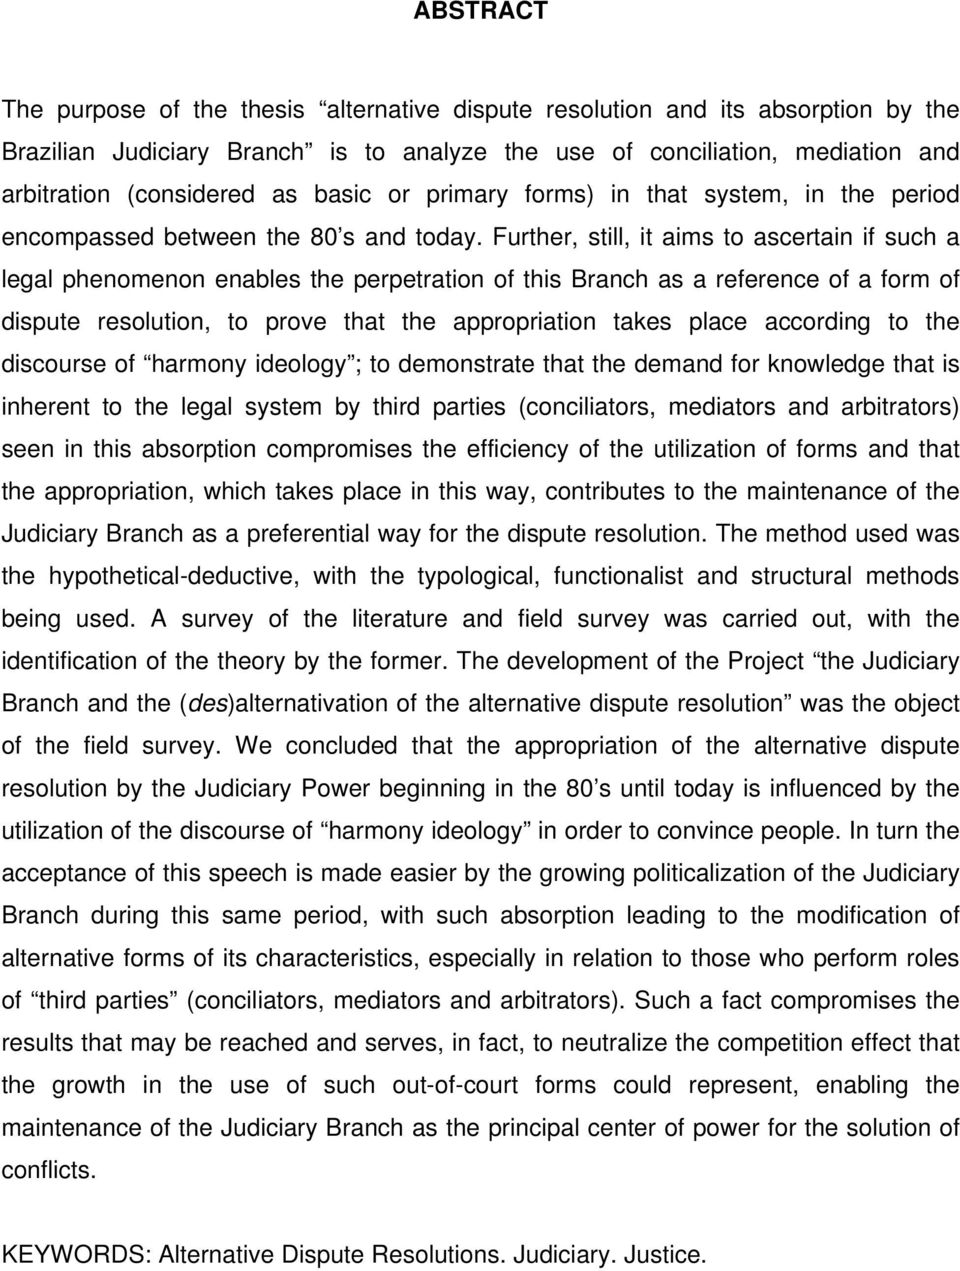 Further, still, it aims to ascertain if such a legal phenomenon enables the perpetration of this Branch as a reference of a form of dispute resolution, to prove that the appropriation takes place